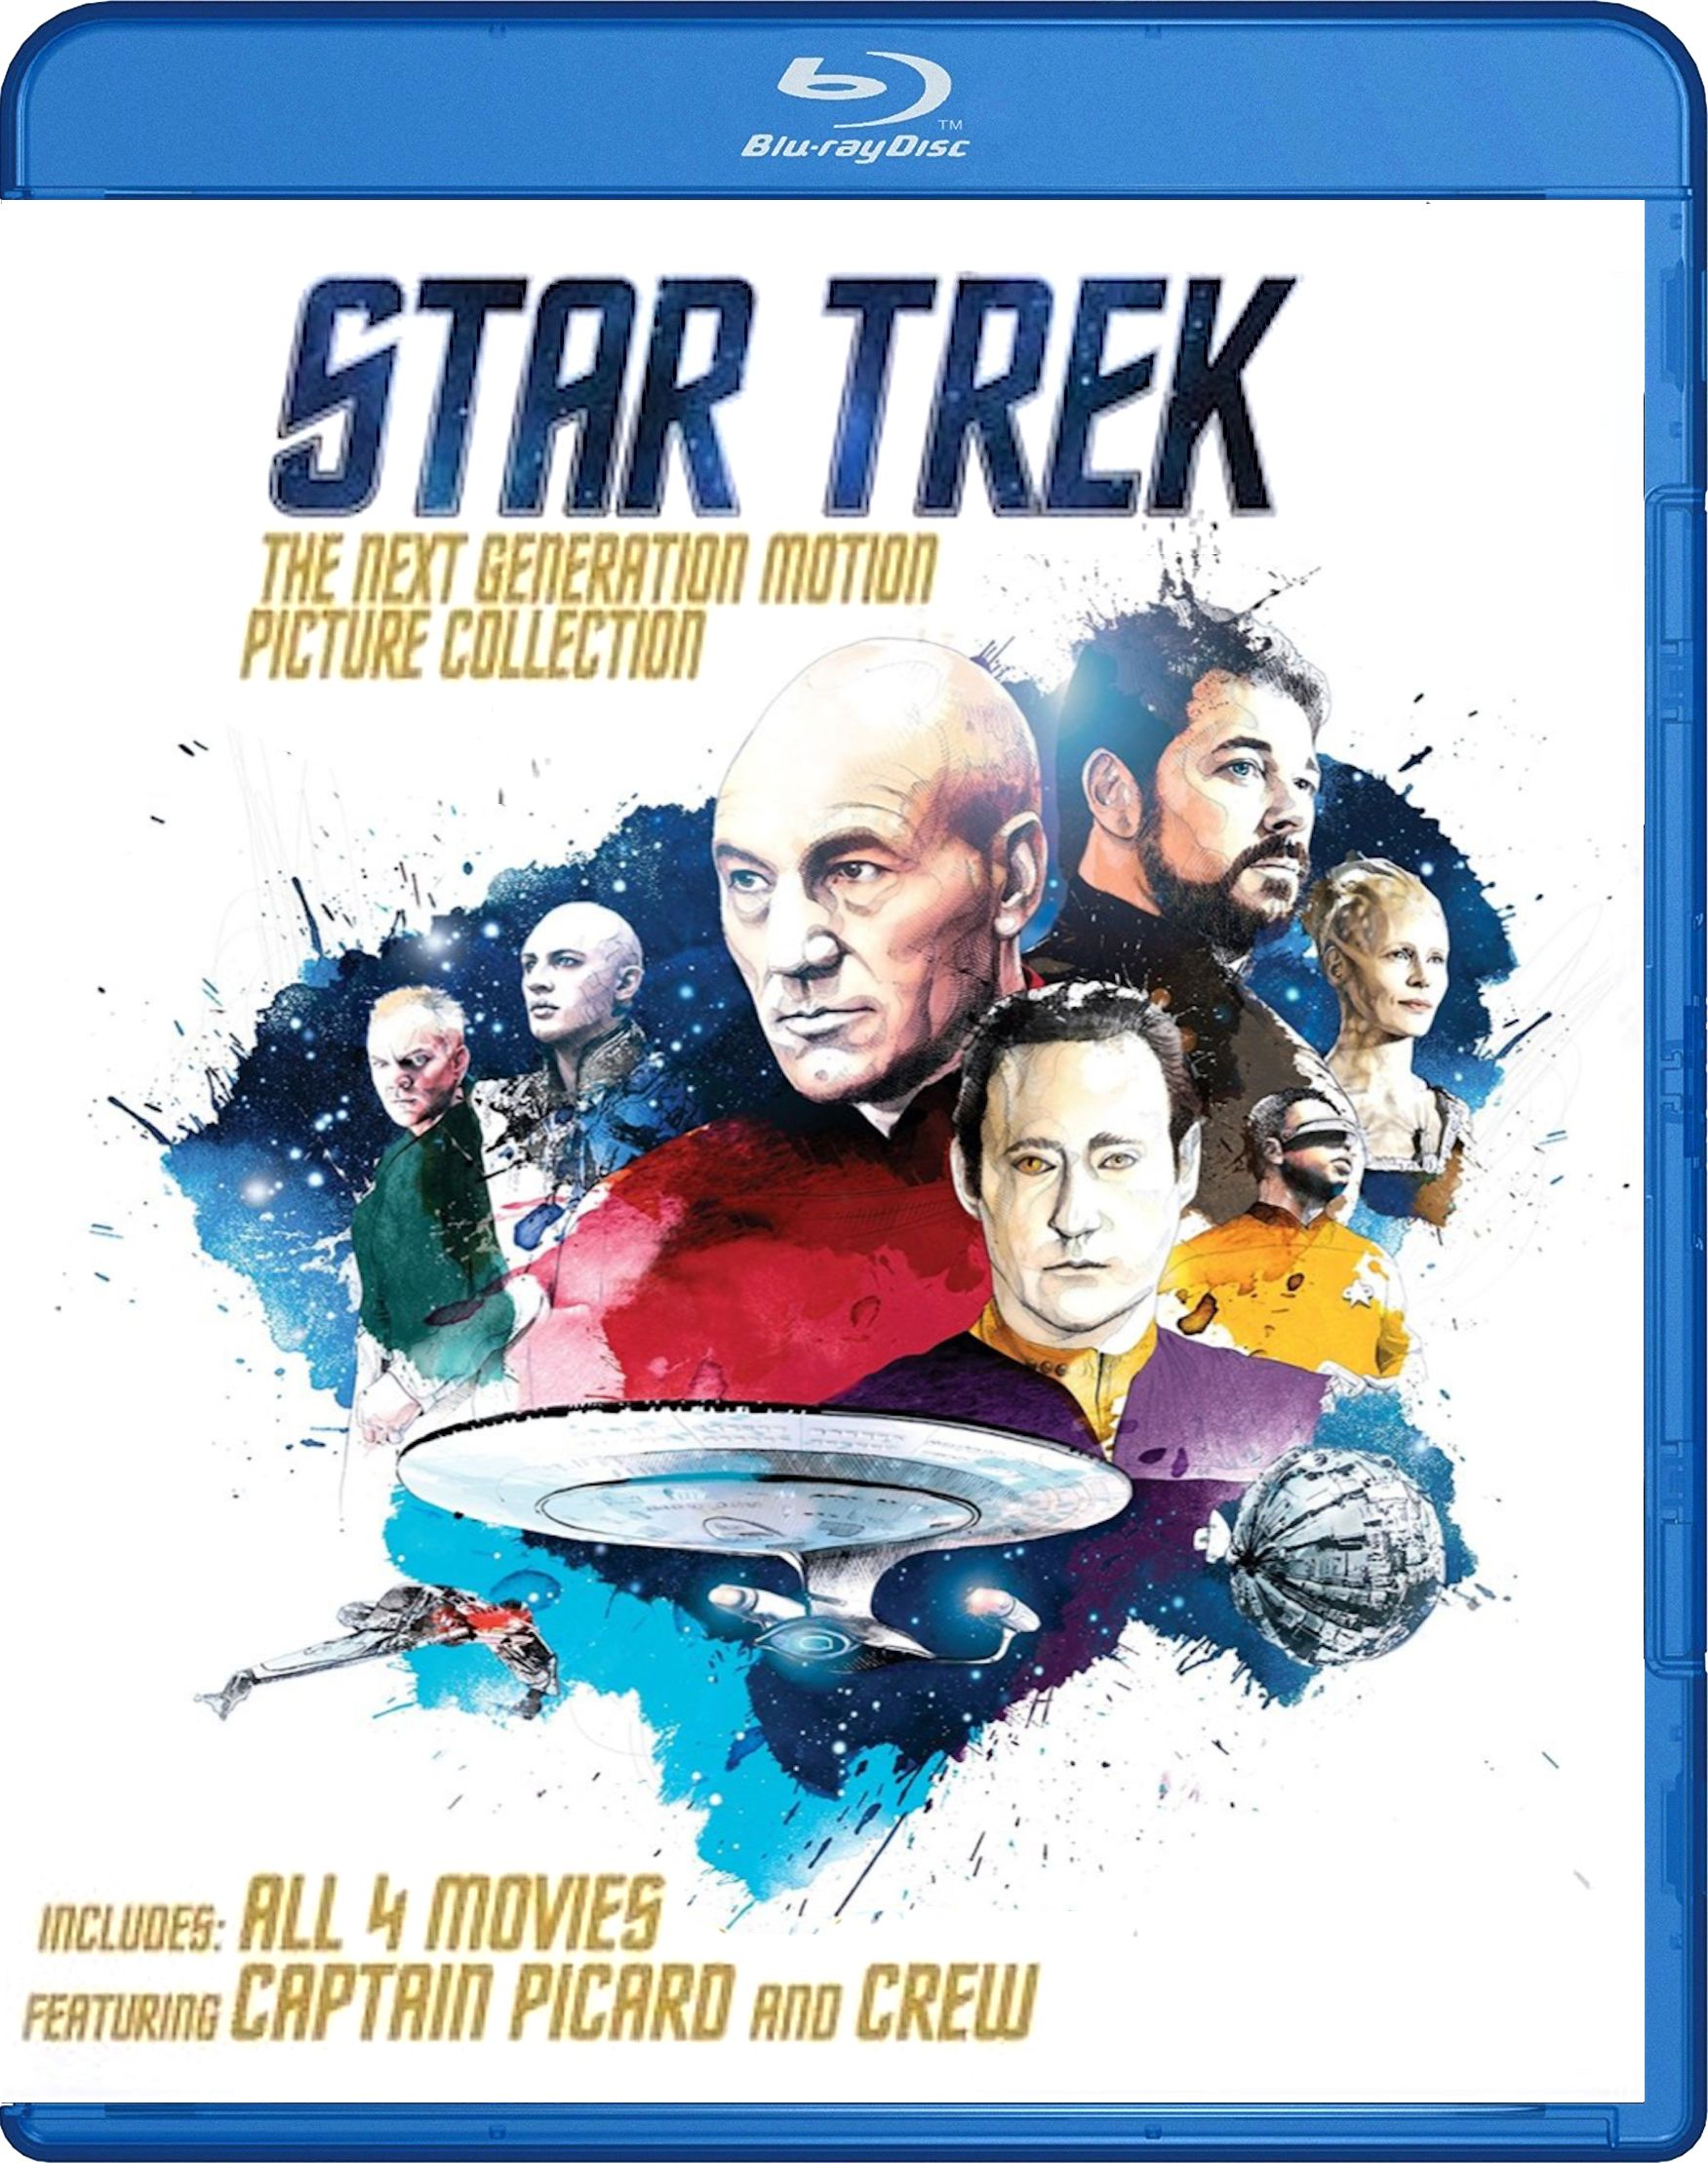 Star Trek: The Next Generation Motion Picture Collection Blu-ray